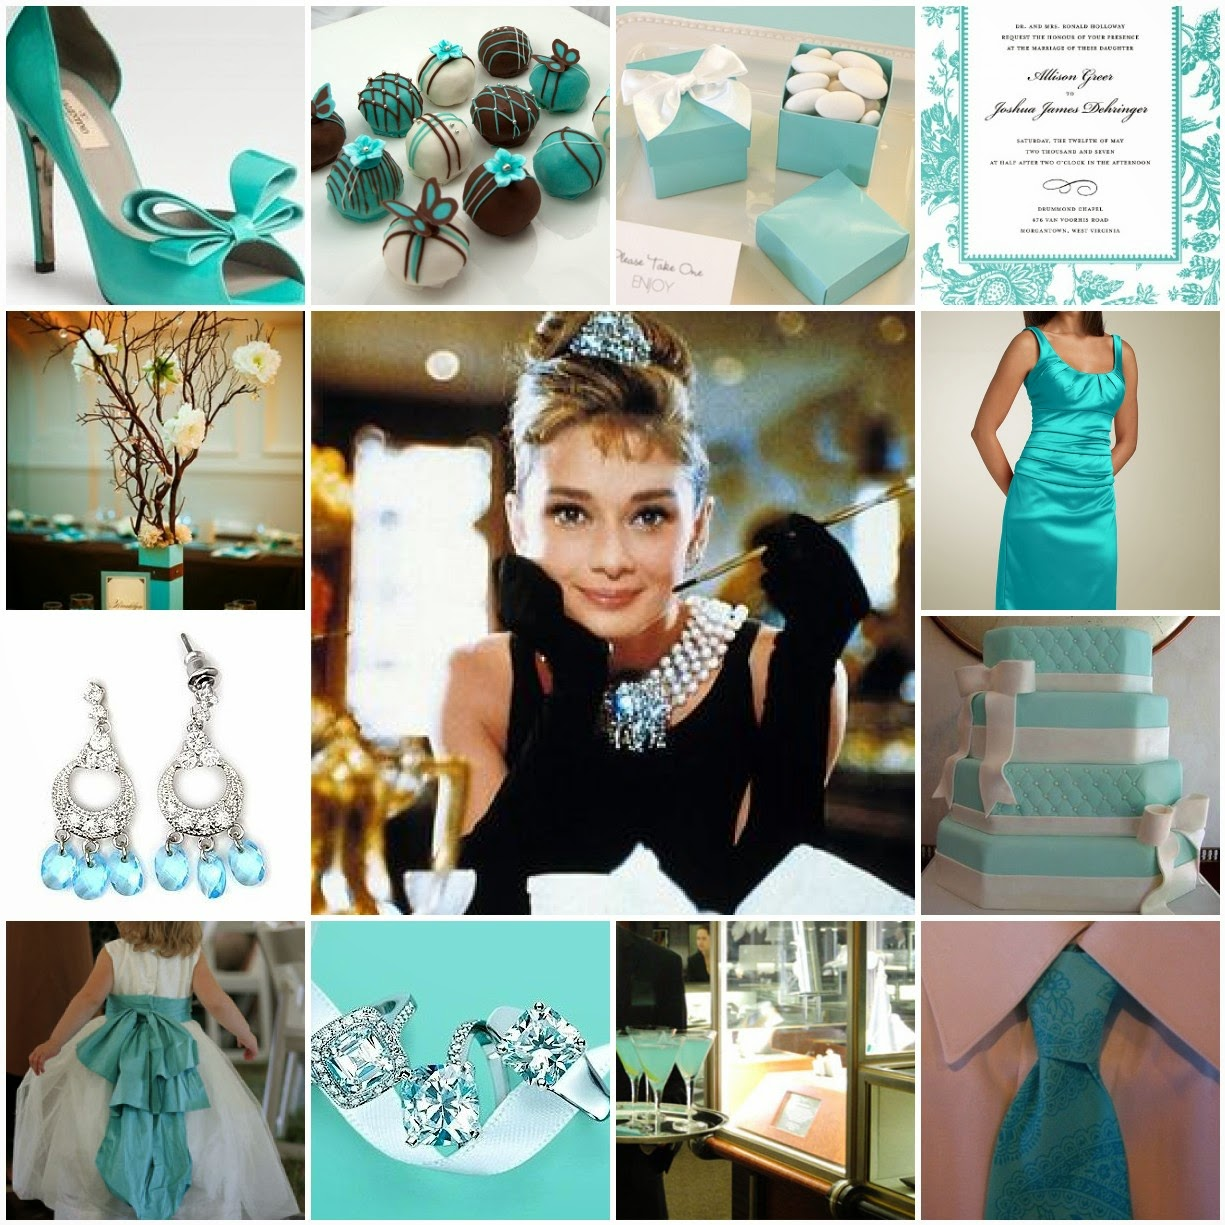 Ben noto Incanti - wedding and event creations: Matrimonio da Tiffany UH49